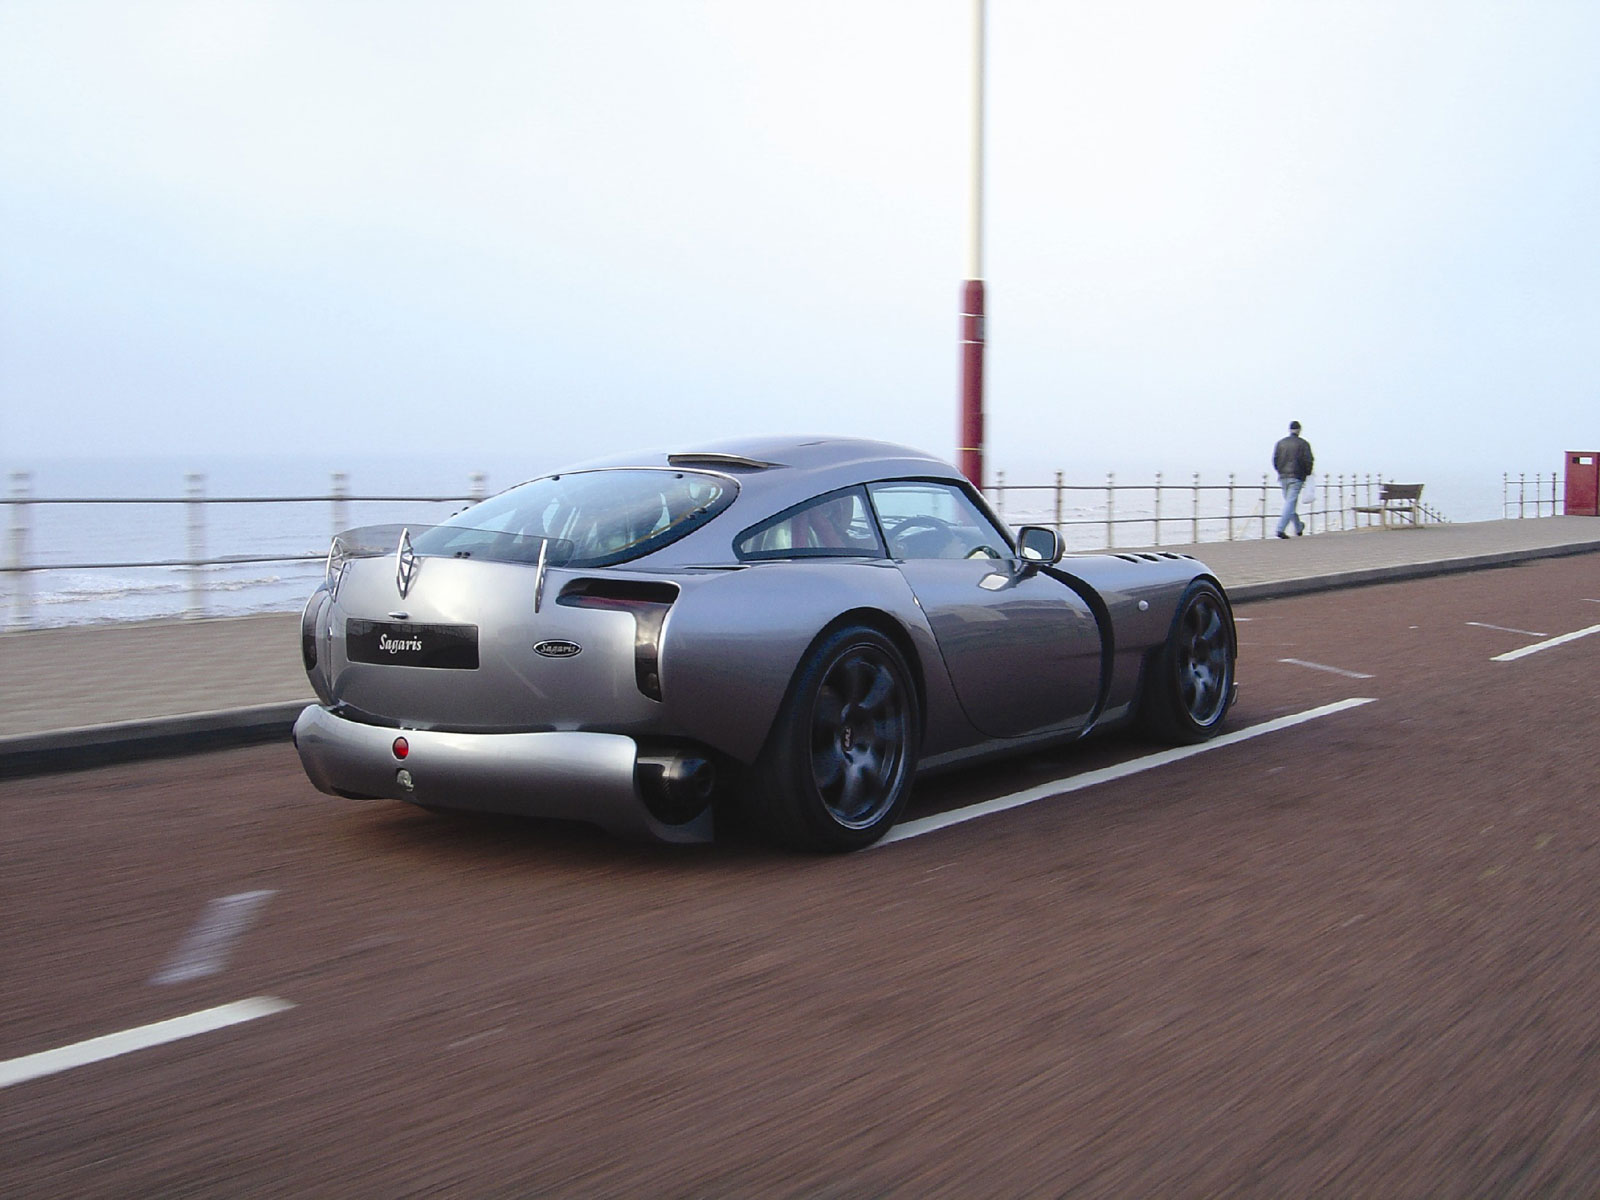 2005 TVR Sagaris Widescreen